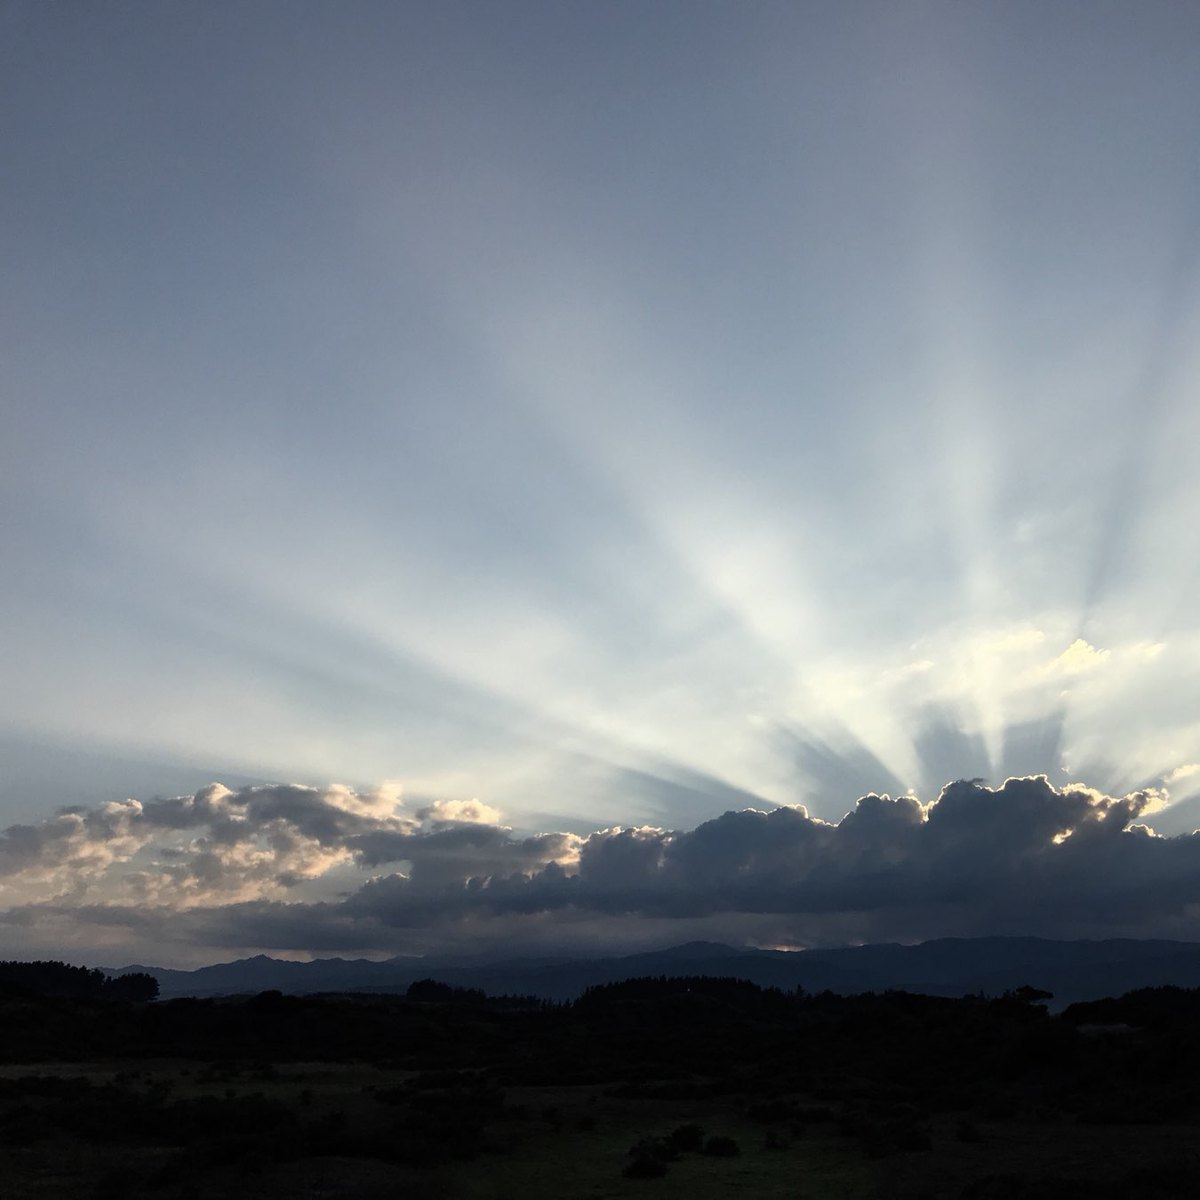 Rays of sun shining up from clouds below.